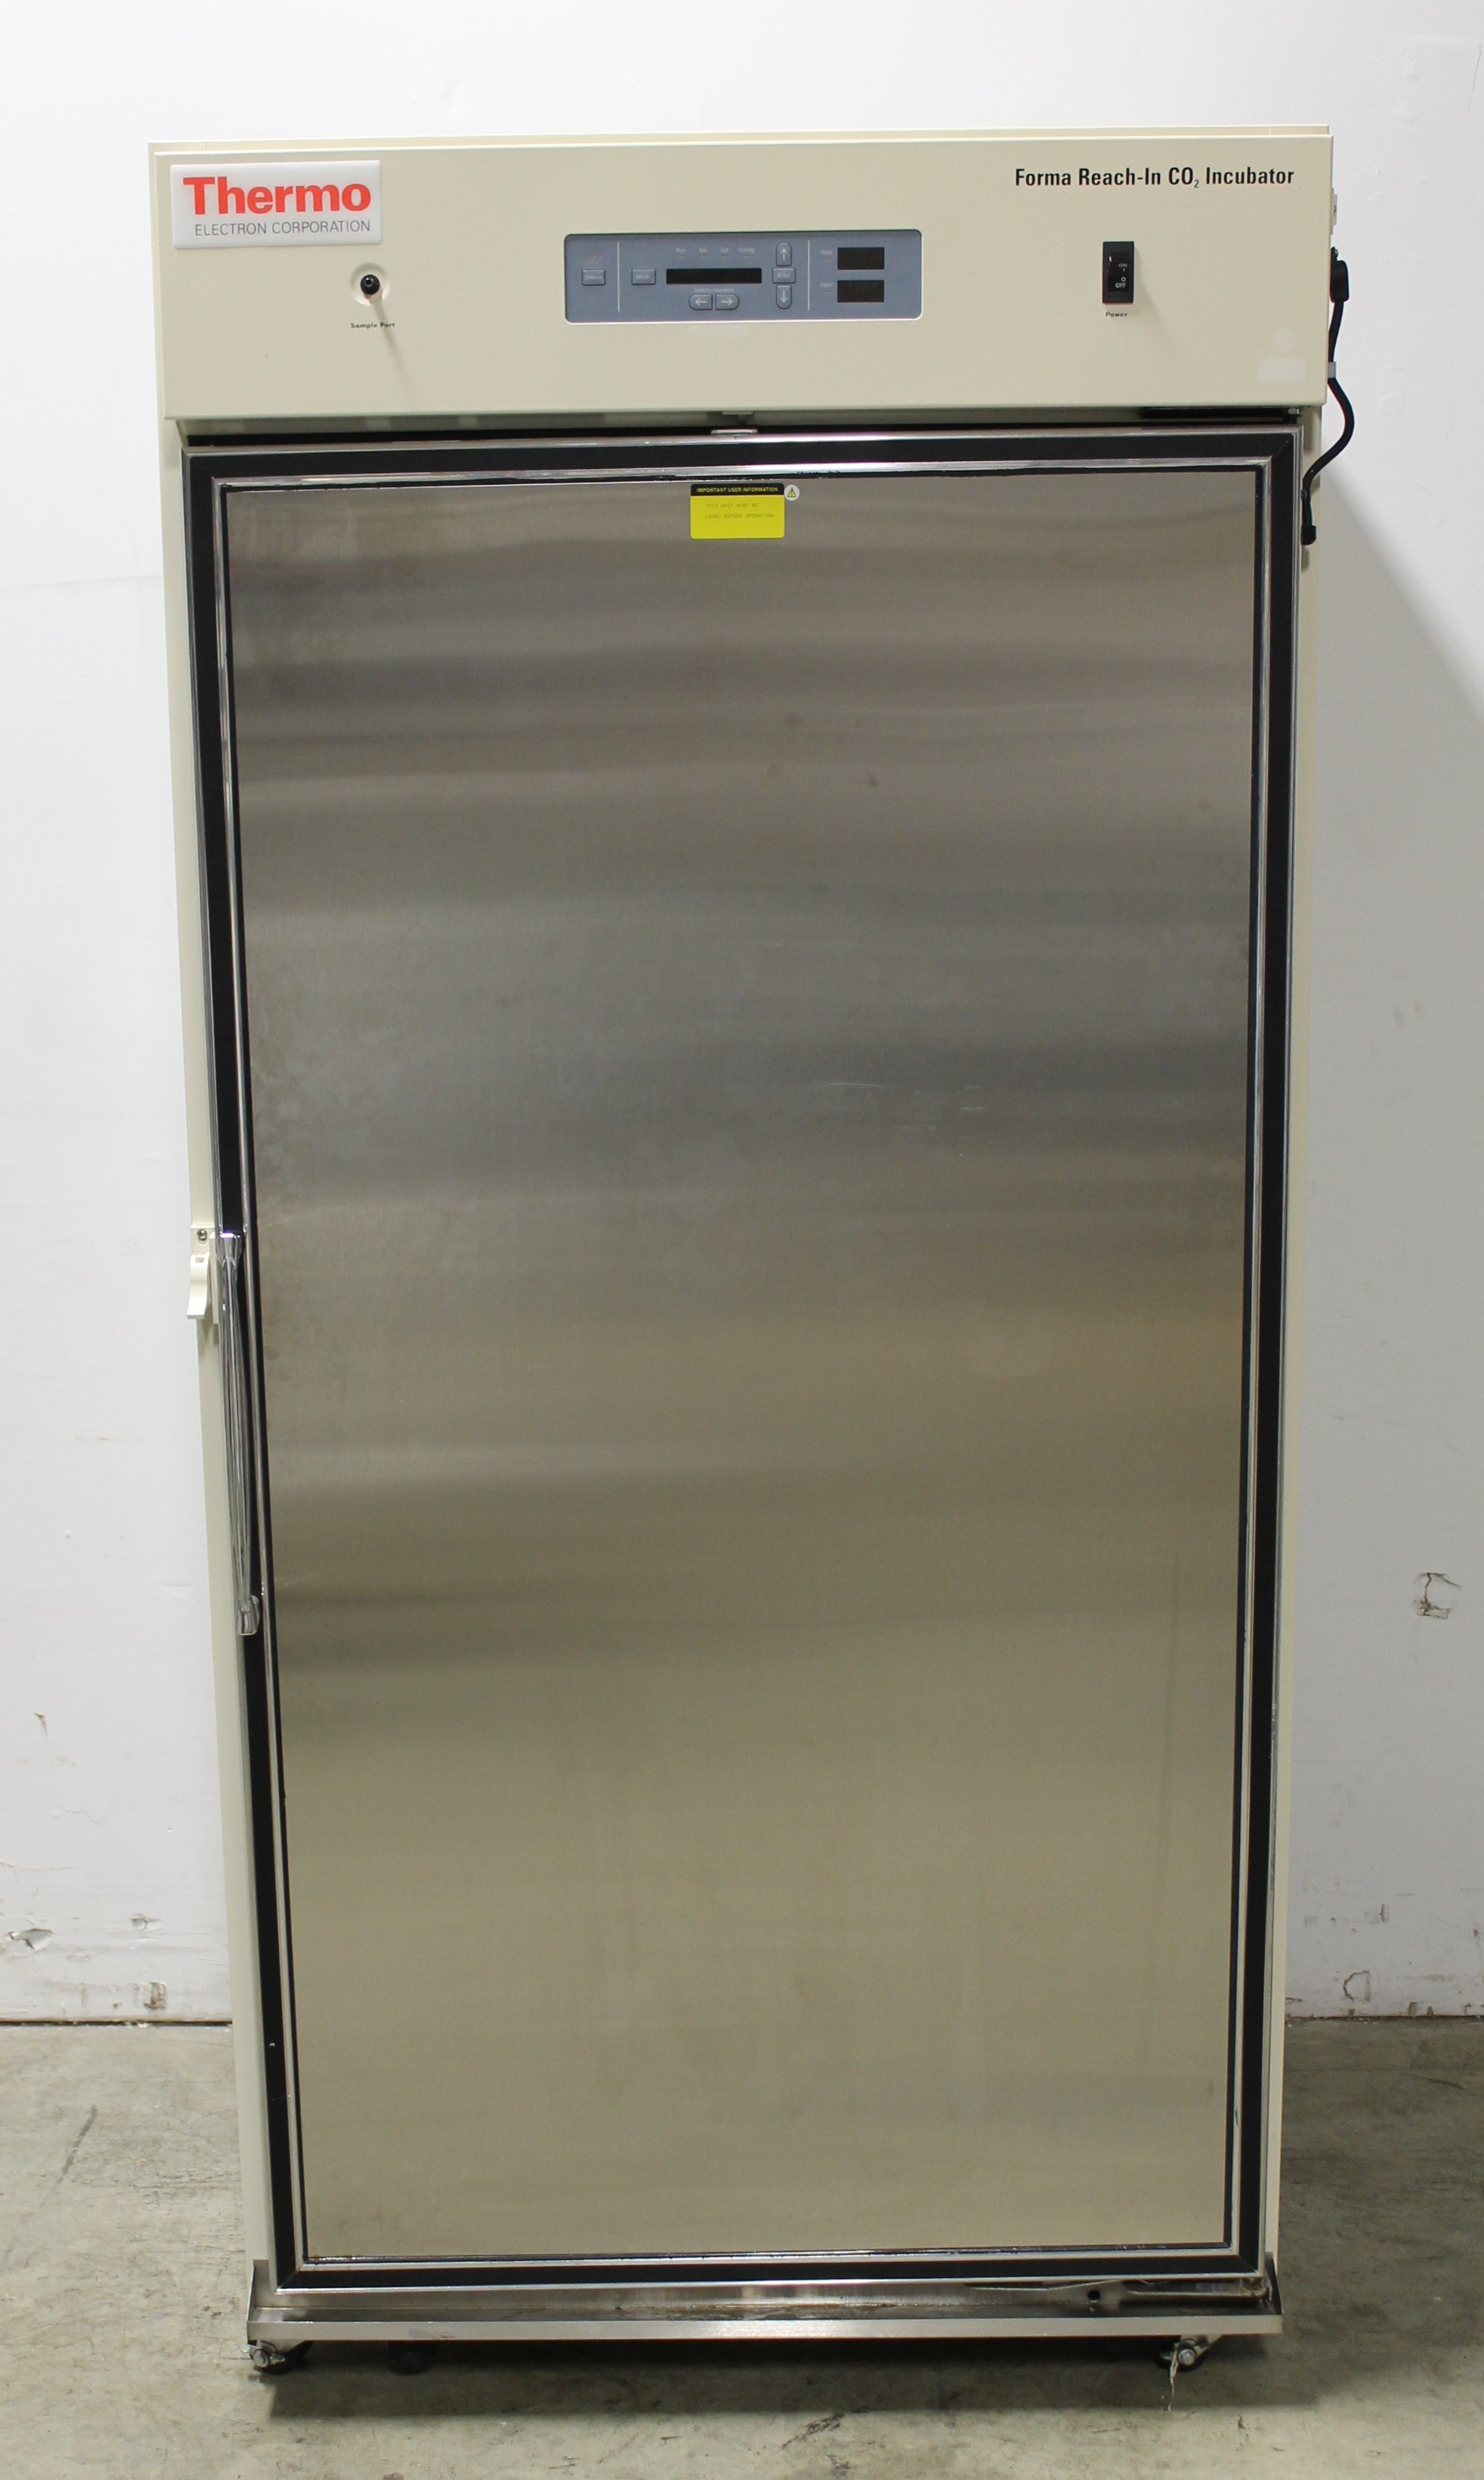 Thermo Forma 3950 High Capacity Reach-In CO2 Incubator with Door Glass Cover Image